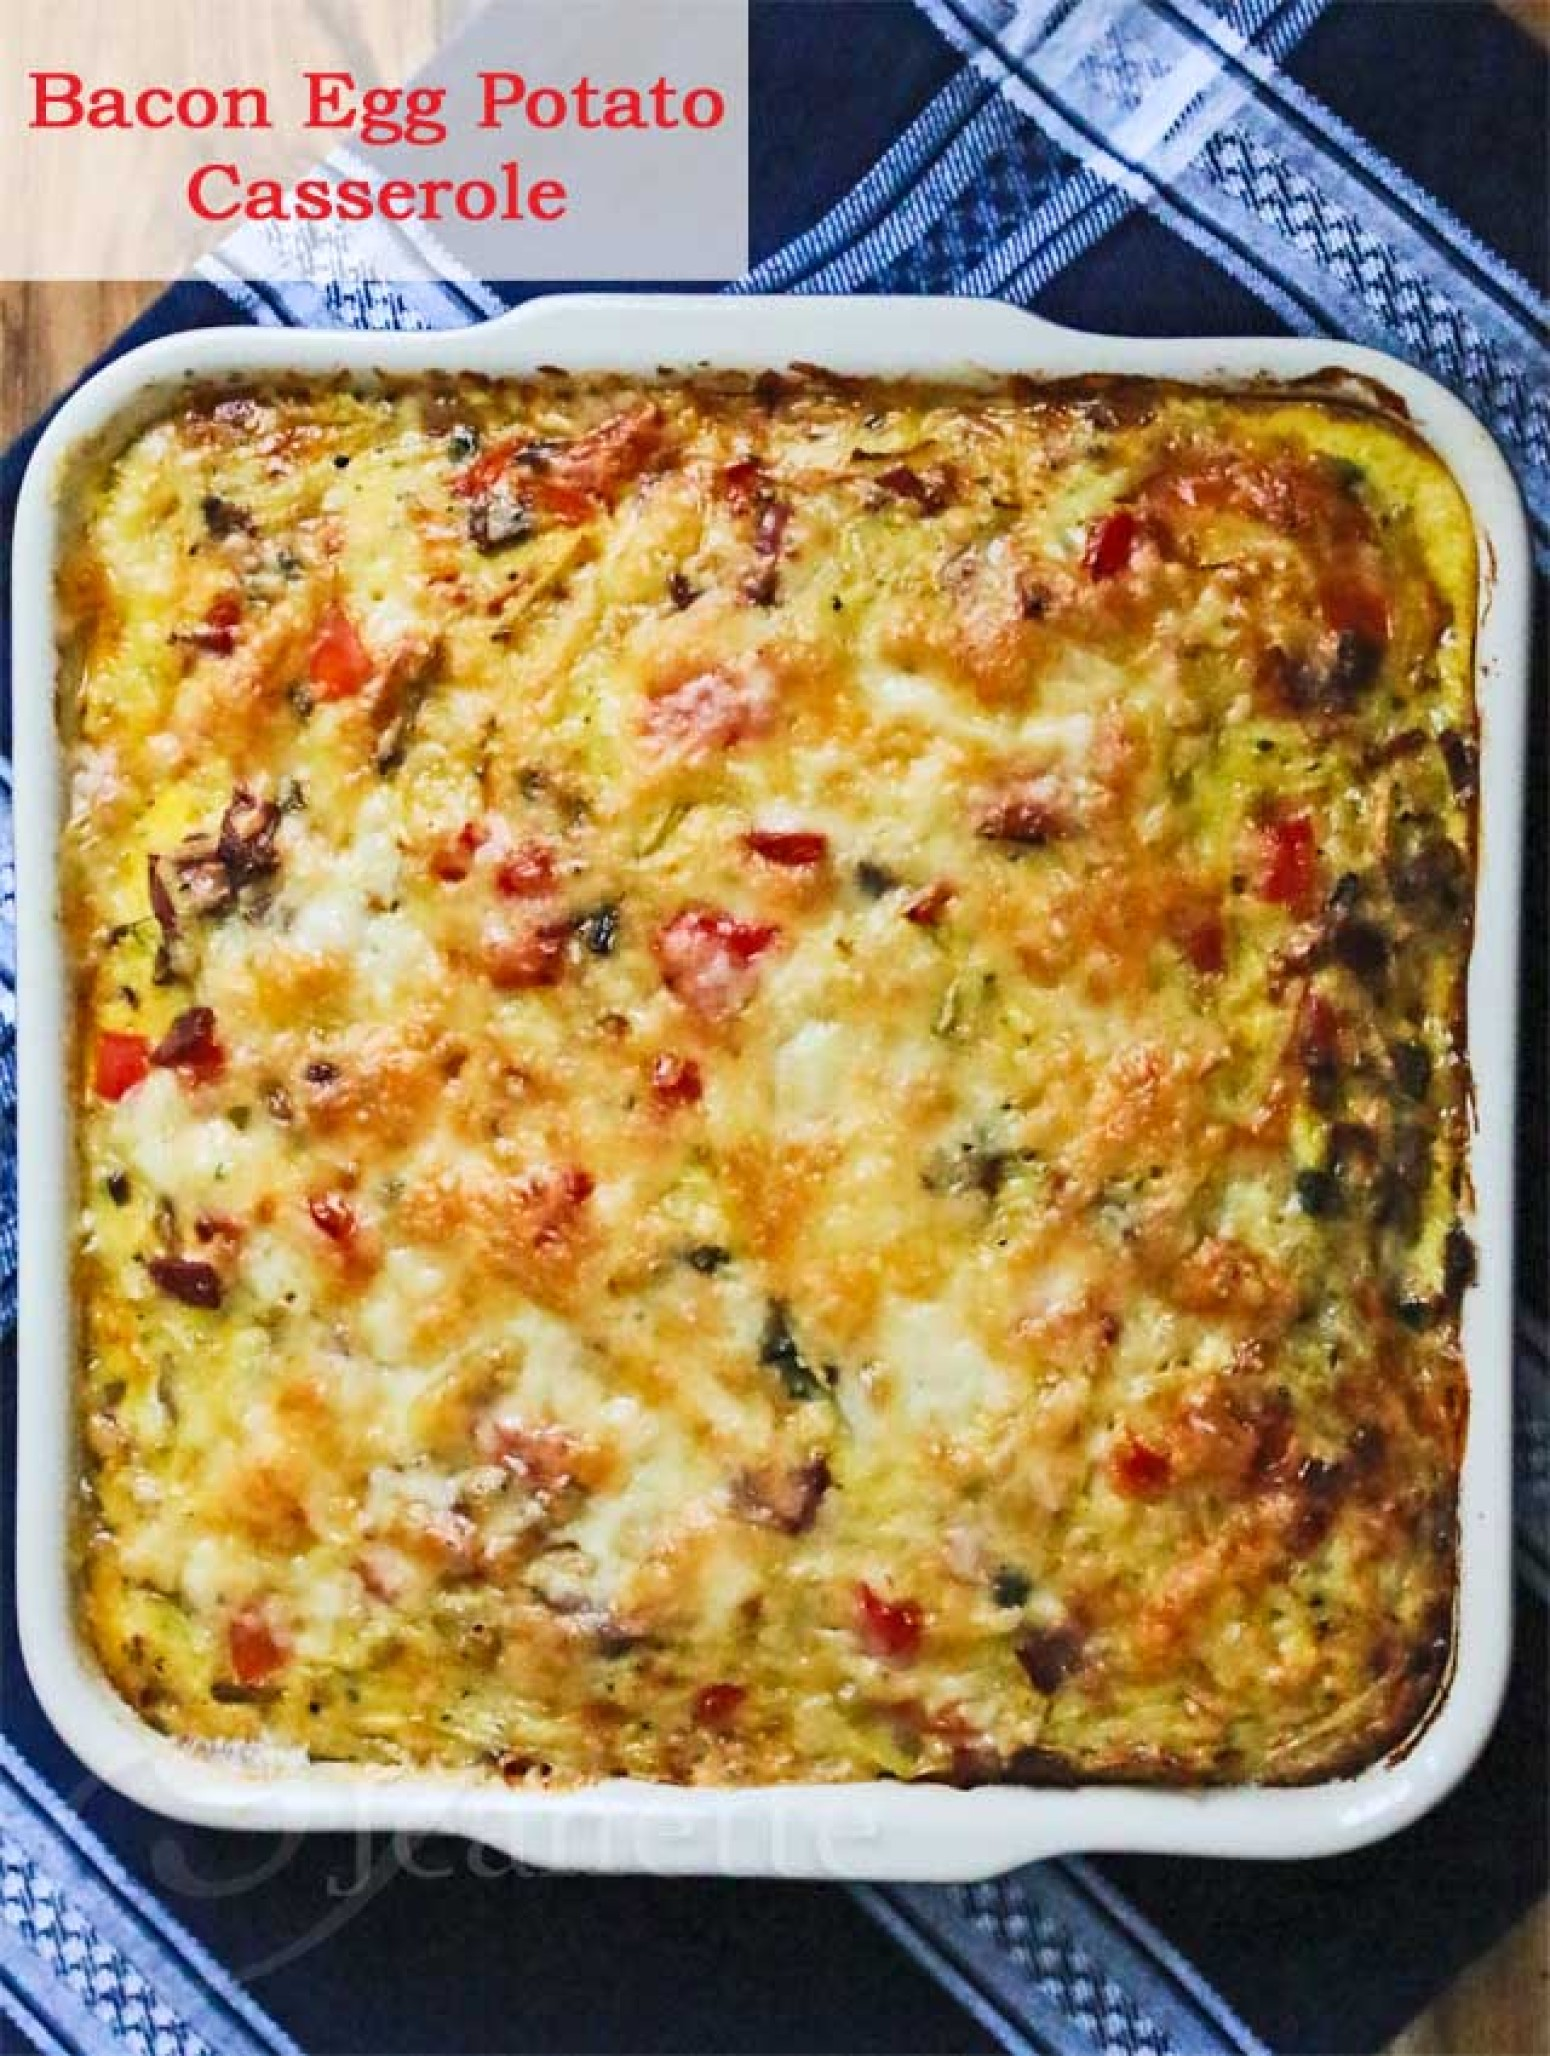 Healthy Bacon Egg Potato Breakfast Casserole Recipe 2 | Just A Pinch ...